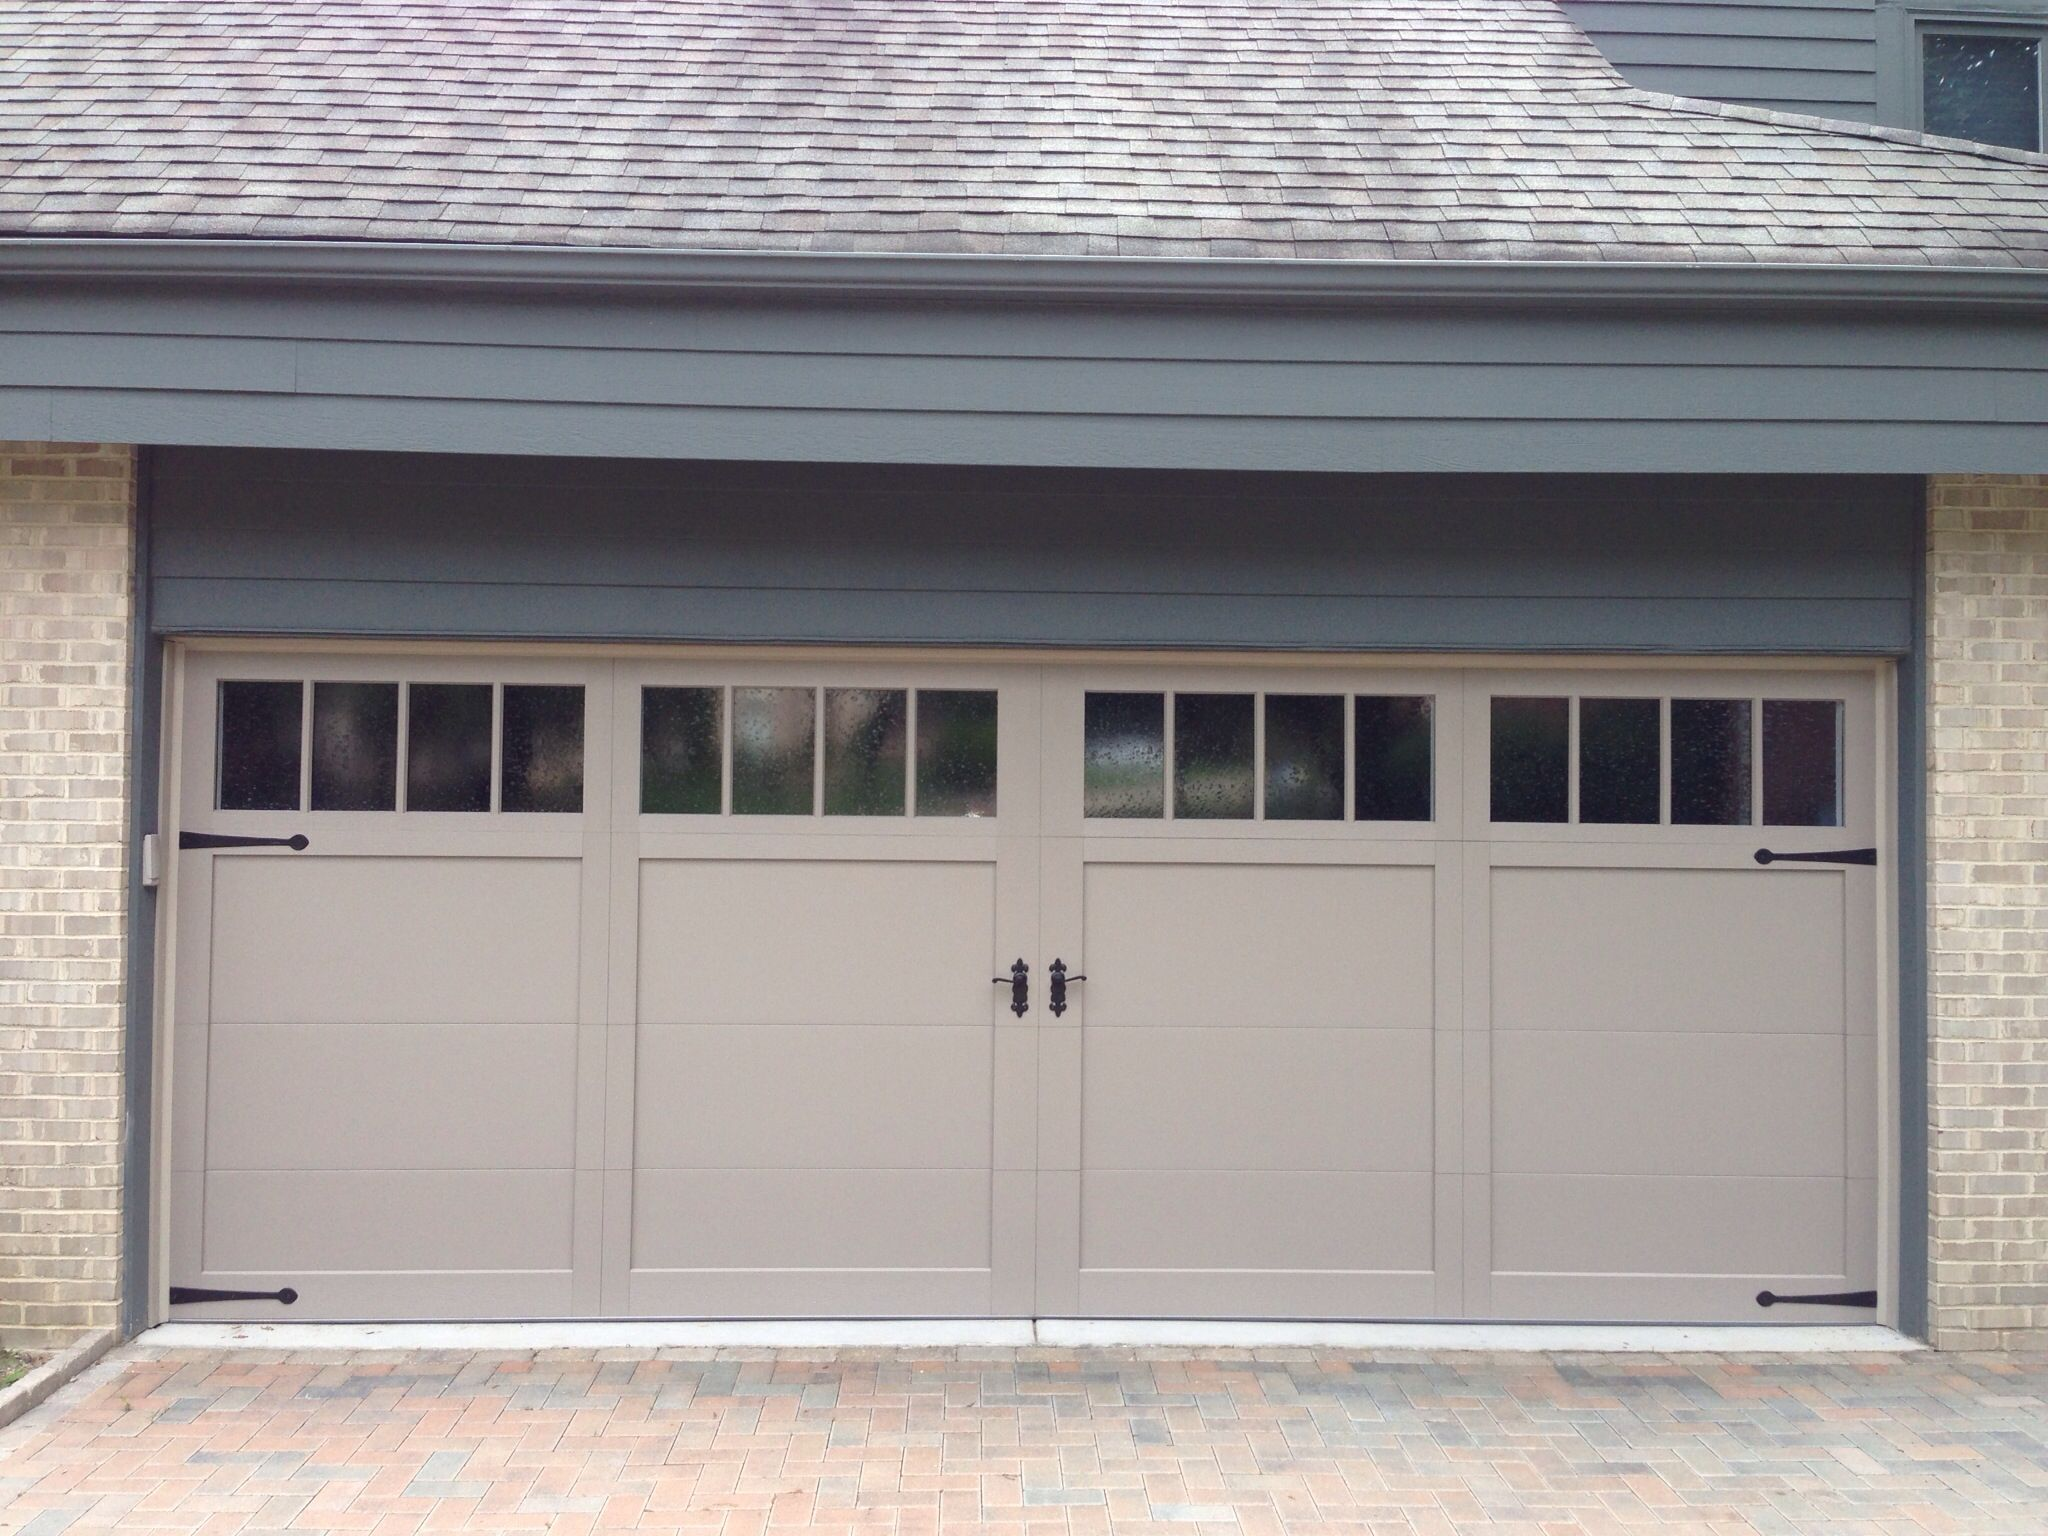 18u0027 x 7u0027 C.H.I. Garage Door - Model 5331 - Color Sandstone & 18u0027 x 7u0027 C.H.I. Garage Door - Model: 5331 - Color: Sandstone ... pezcame.com